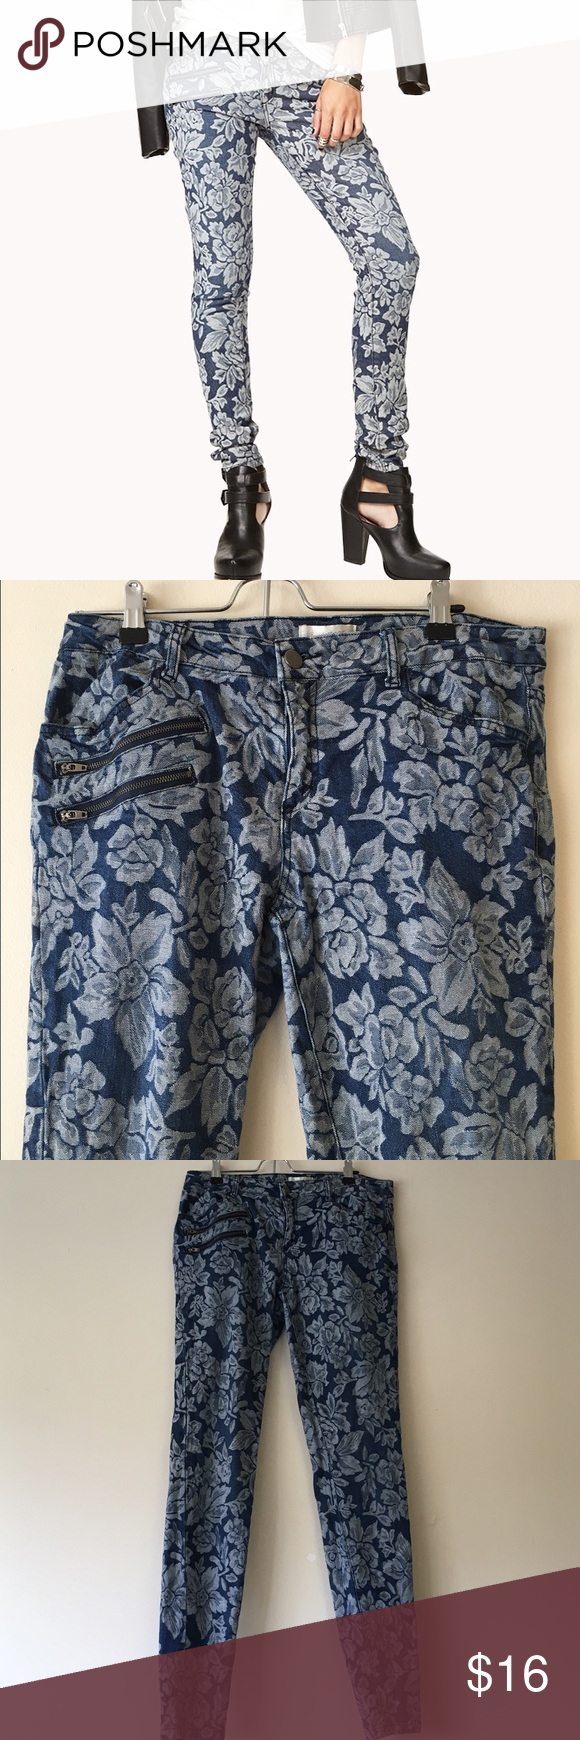 Blue and White Jacquard Floral Skinny Jeans A light denim blue skinny jean decorated with a beautiful white floral pattern. A double zipper accents the front pocket. Cute a sweater or boots! Forever 21 Jeans Skinny